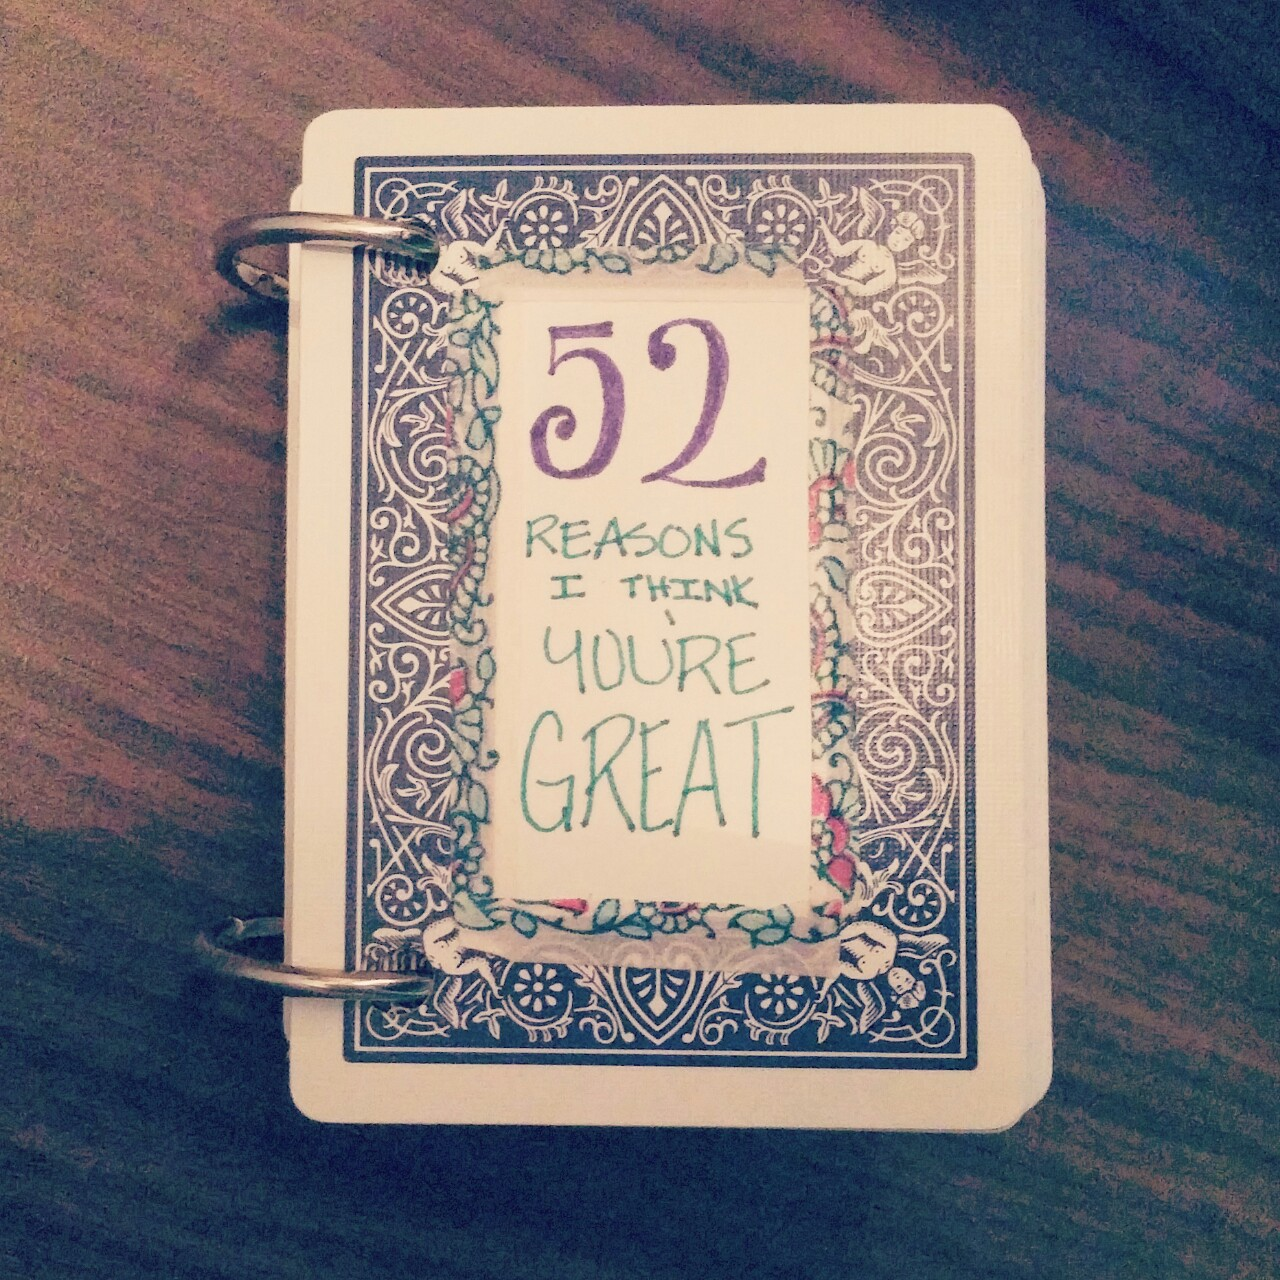 A Handmade Book Titled 52 Reasons Why I Think Youre Great